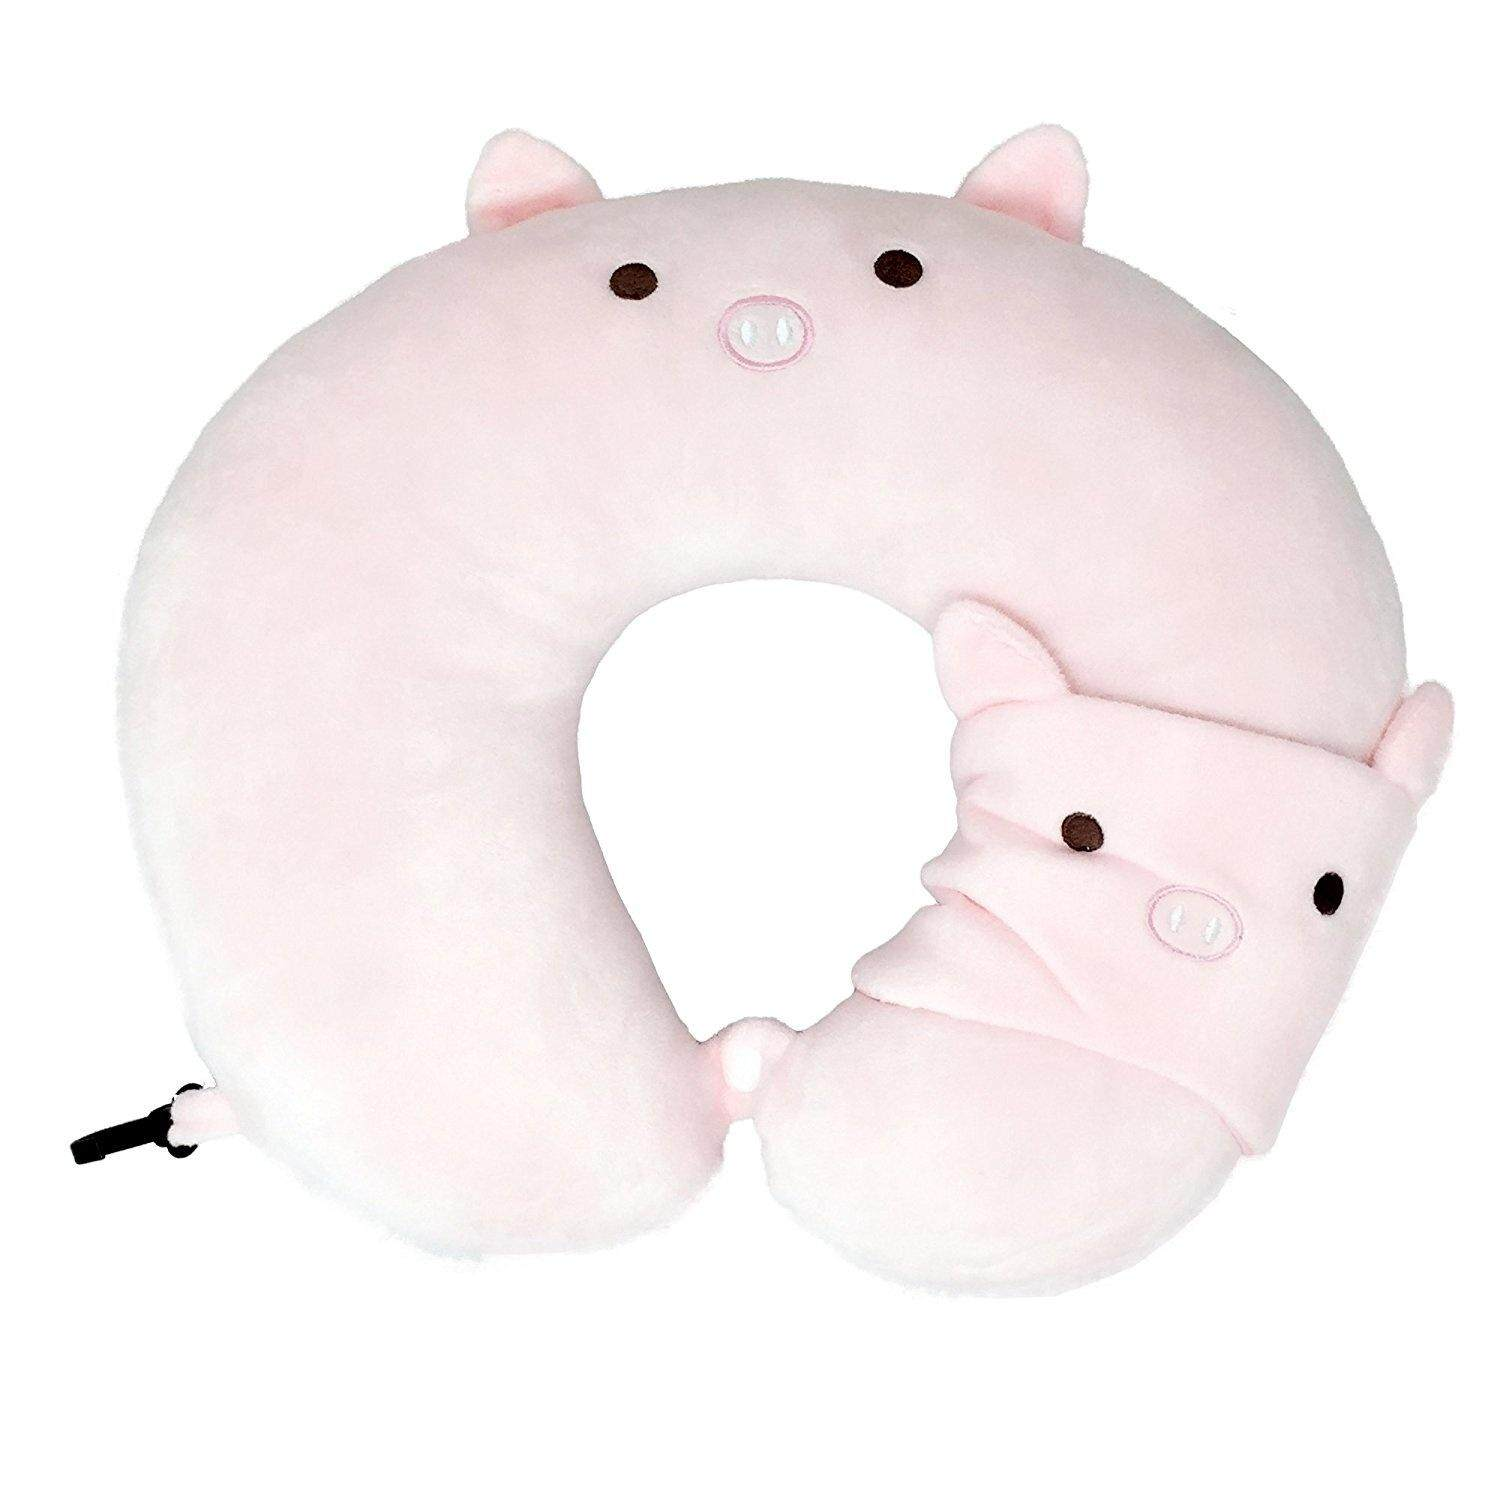 piggy-comfortable-kid39s-travel-neck-pillow-with-sleeping-mask-pink-piggy-3847-378123281-81ea3c0a0a1ce045f5fb036a9e707bbd- Koleksi List Harga Masker Babi Termurah bulan ini